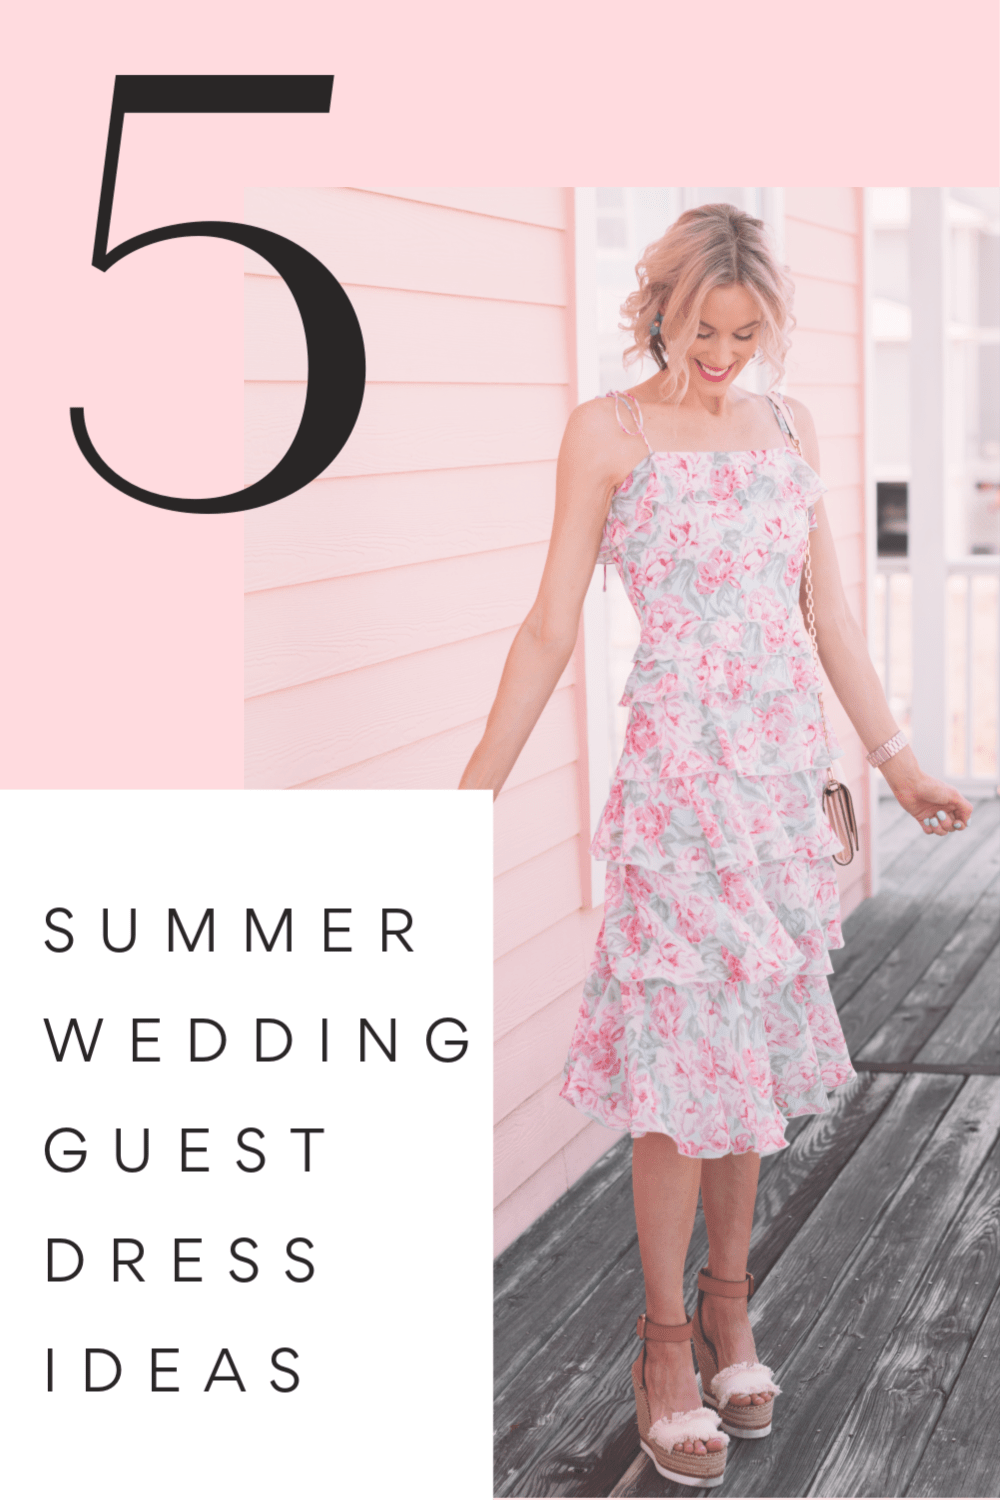 Wedding Guest Dresses For Summer.What To Wear To A Summer Wedding Summer Wedding Guest Dress Ideas